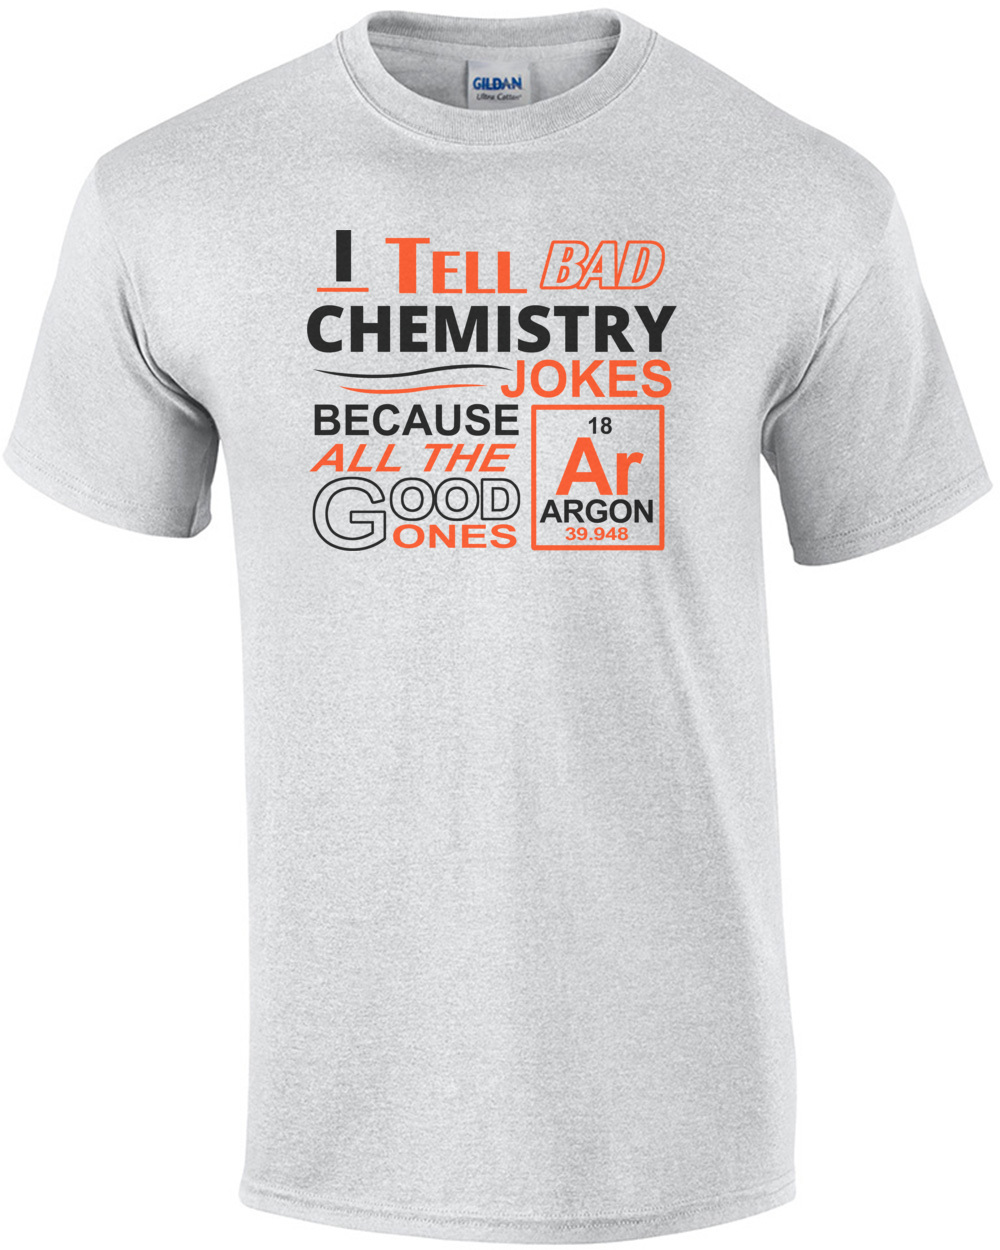 I Tell Bad Chemistry Jokes Because All The Good Ones Argon T-Shirt